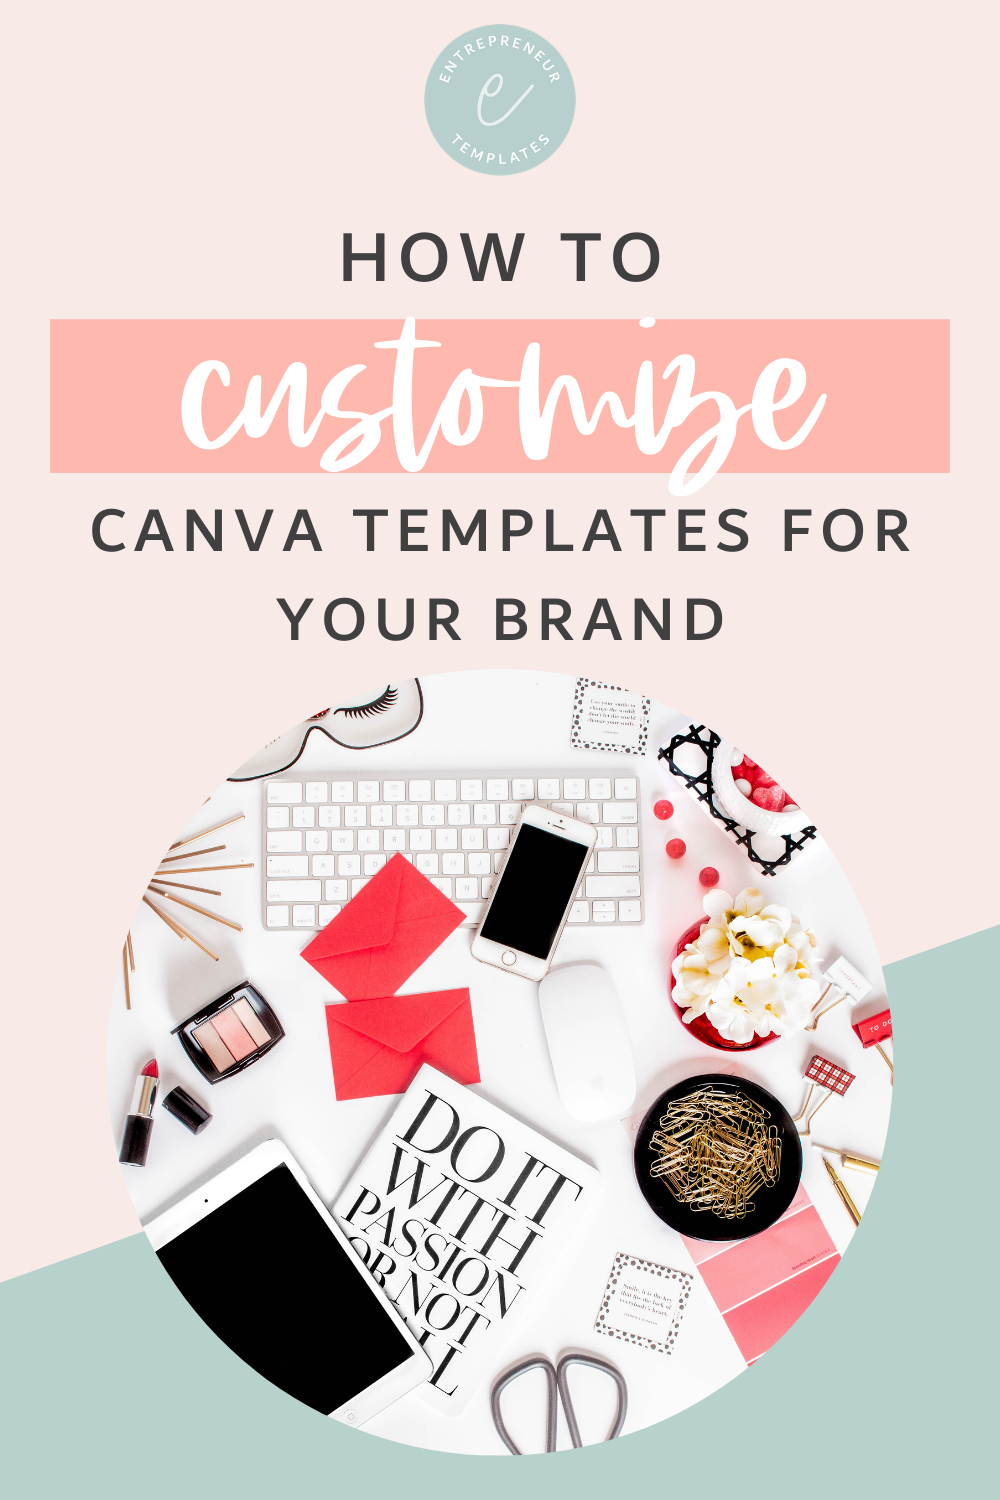 How to Customize Canva Templates for your Brand